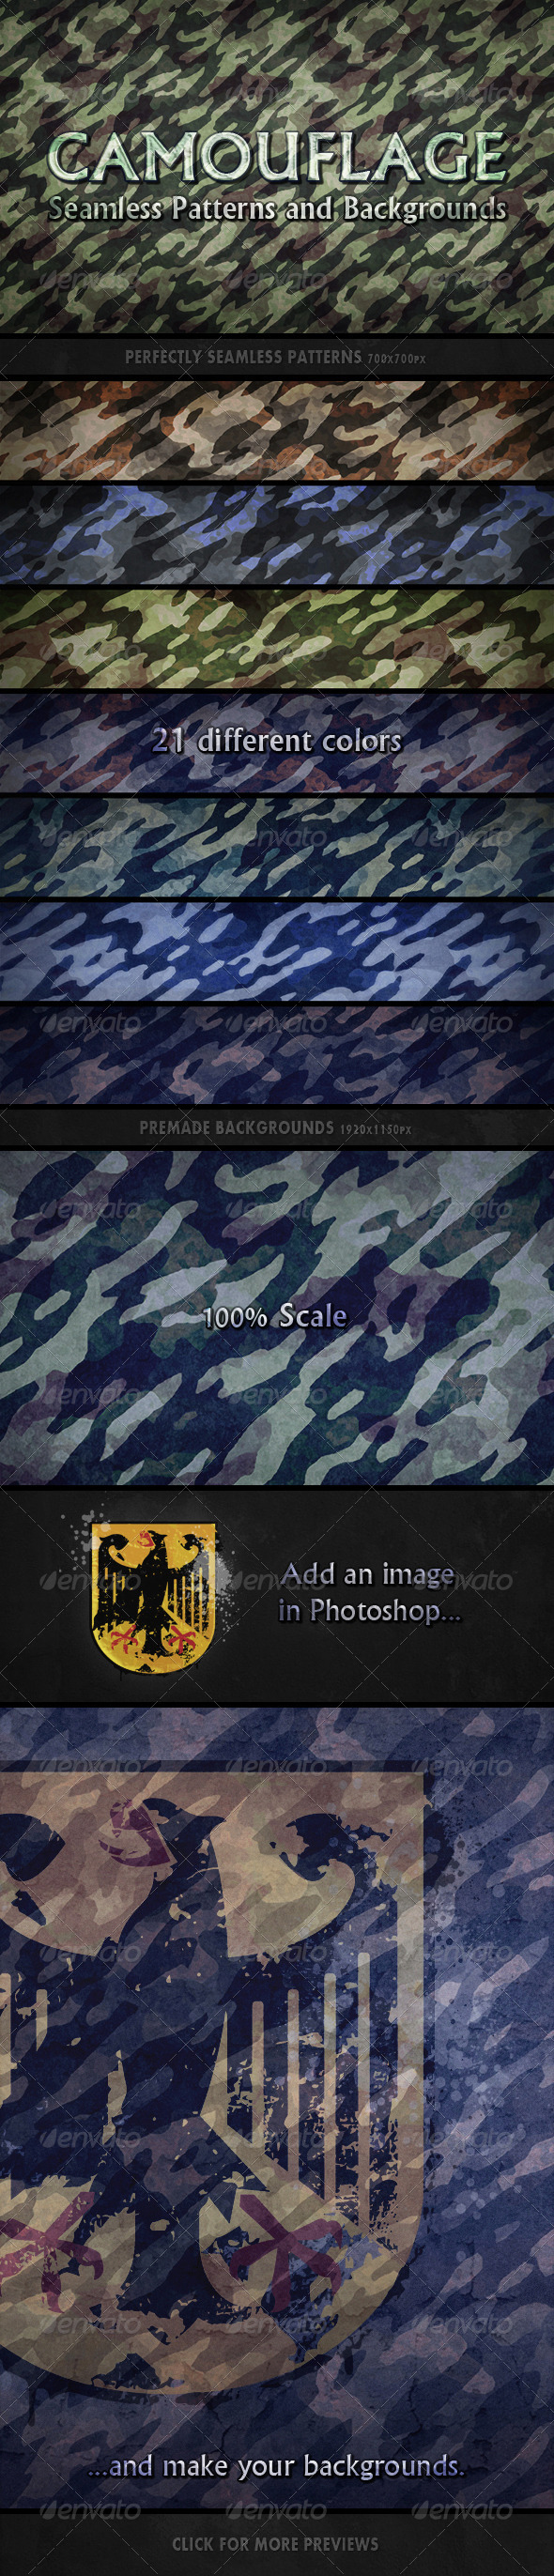 Camouflage Seamless Patterns - Patterns Backgrounds